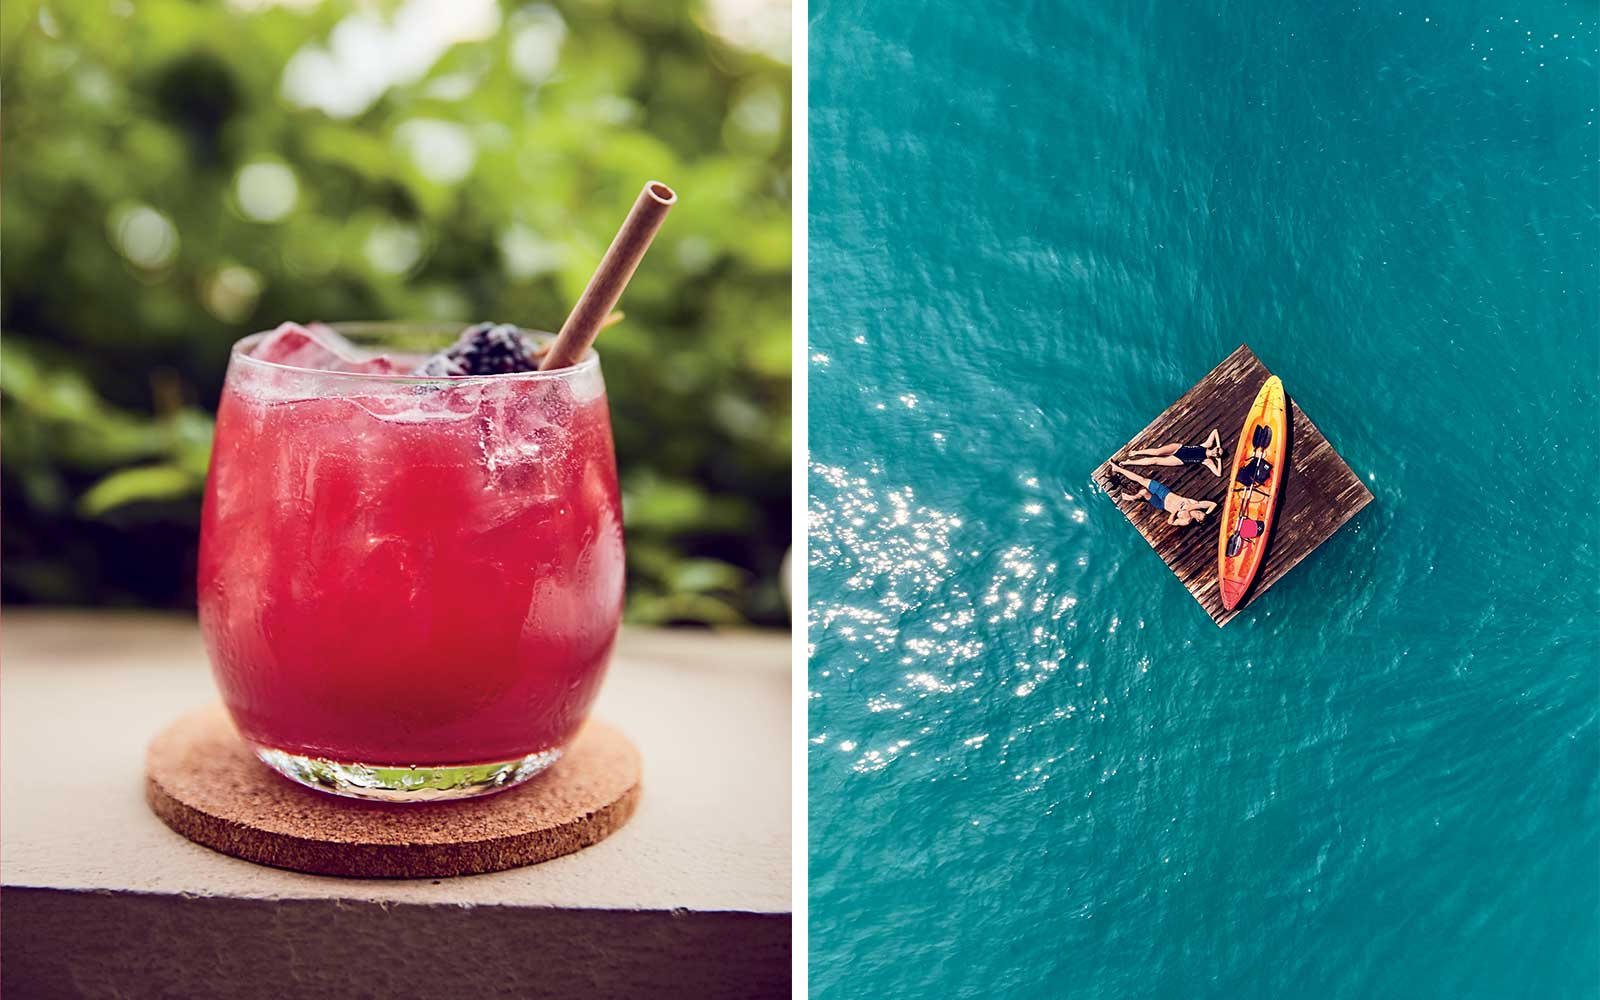 Cocktails and Swimming in Costa Rica